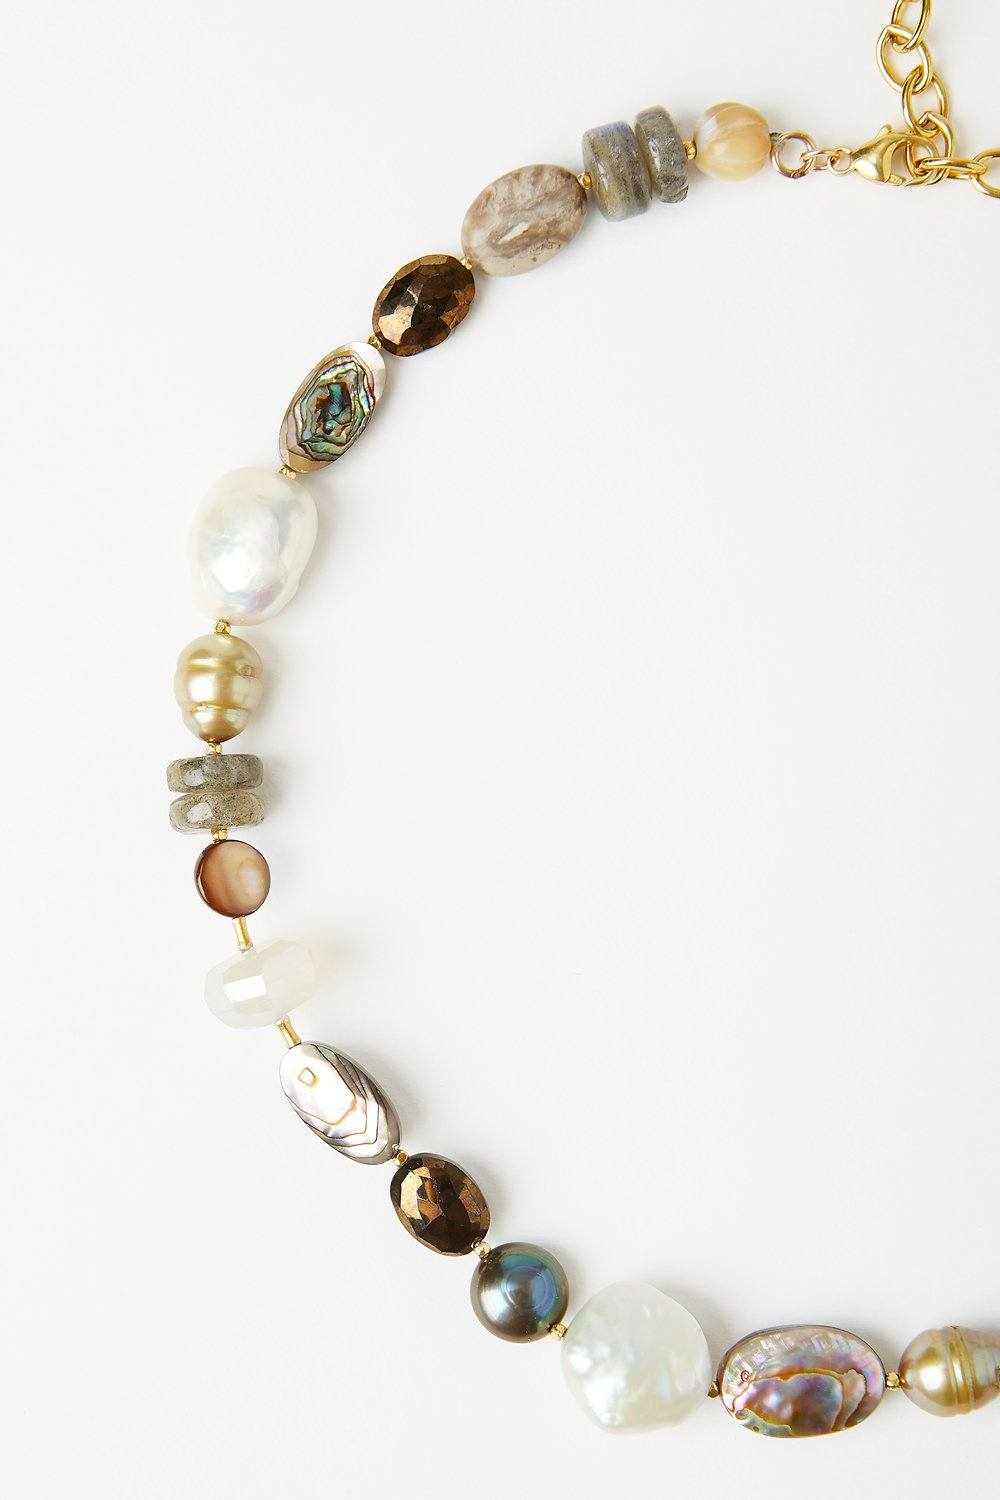 Abalone and Labradorite Mix Necklace